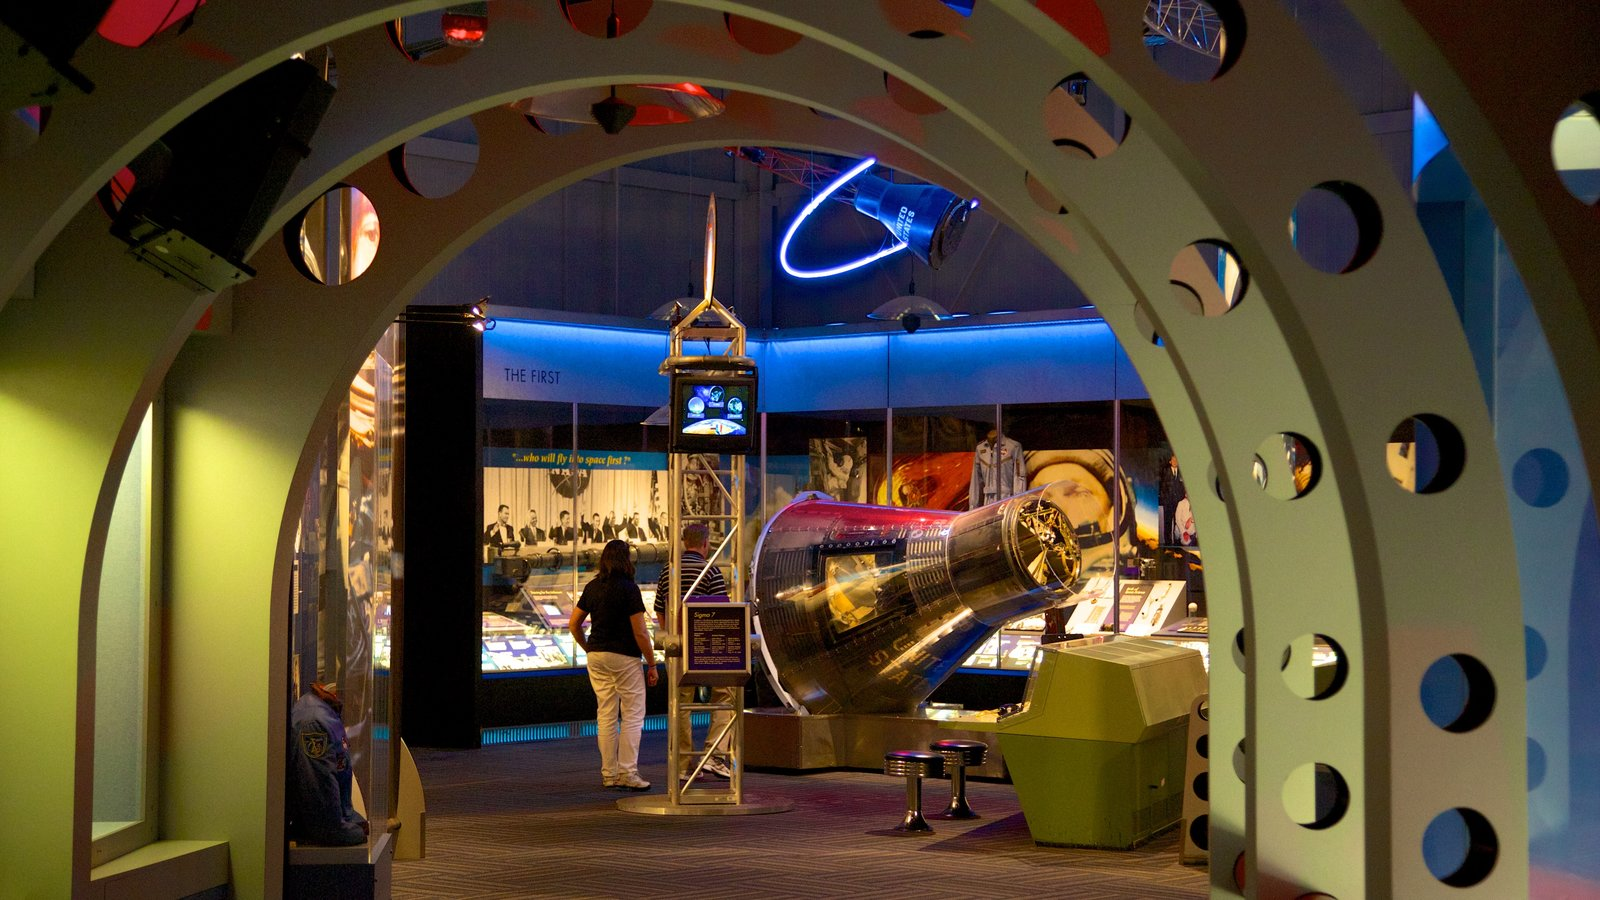 United States Astronaut Hall of Fame showing interior views